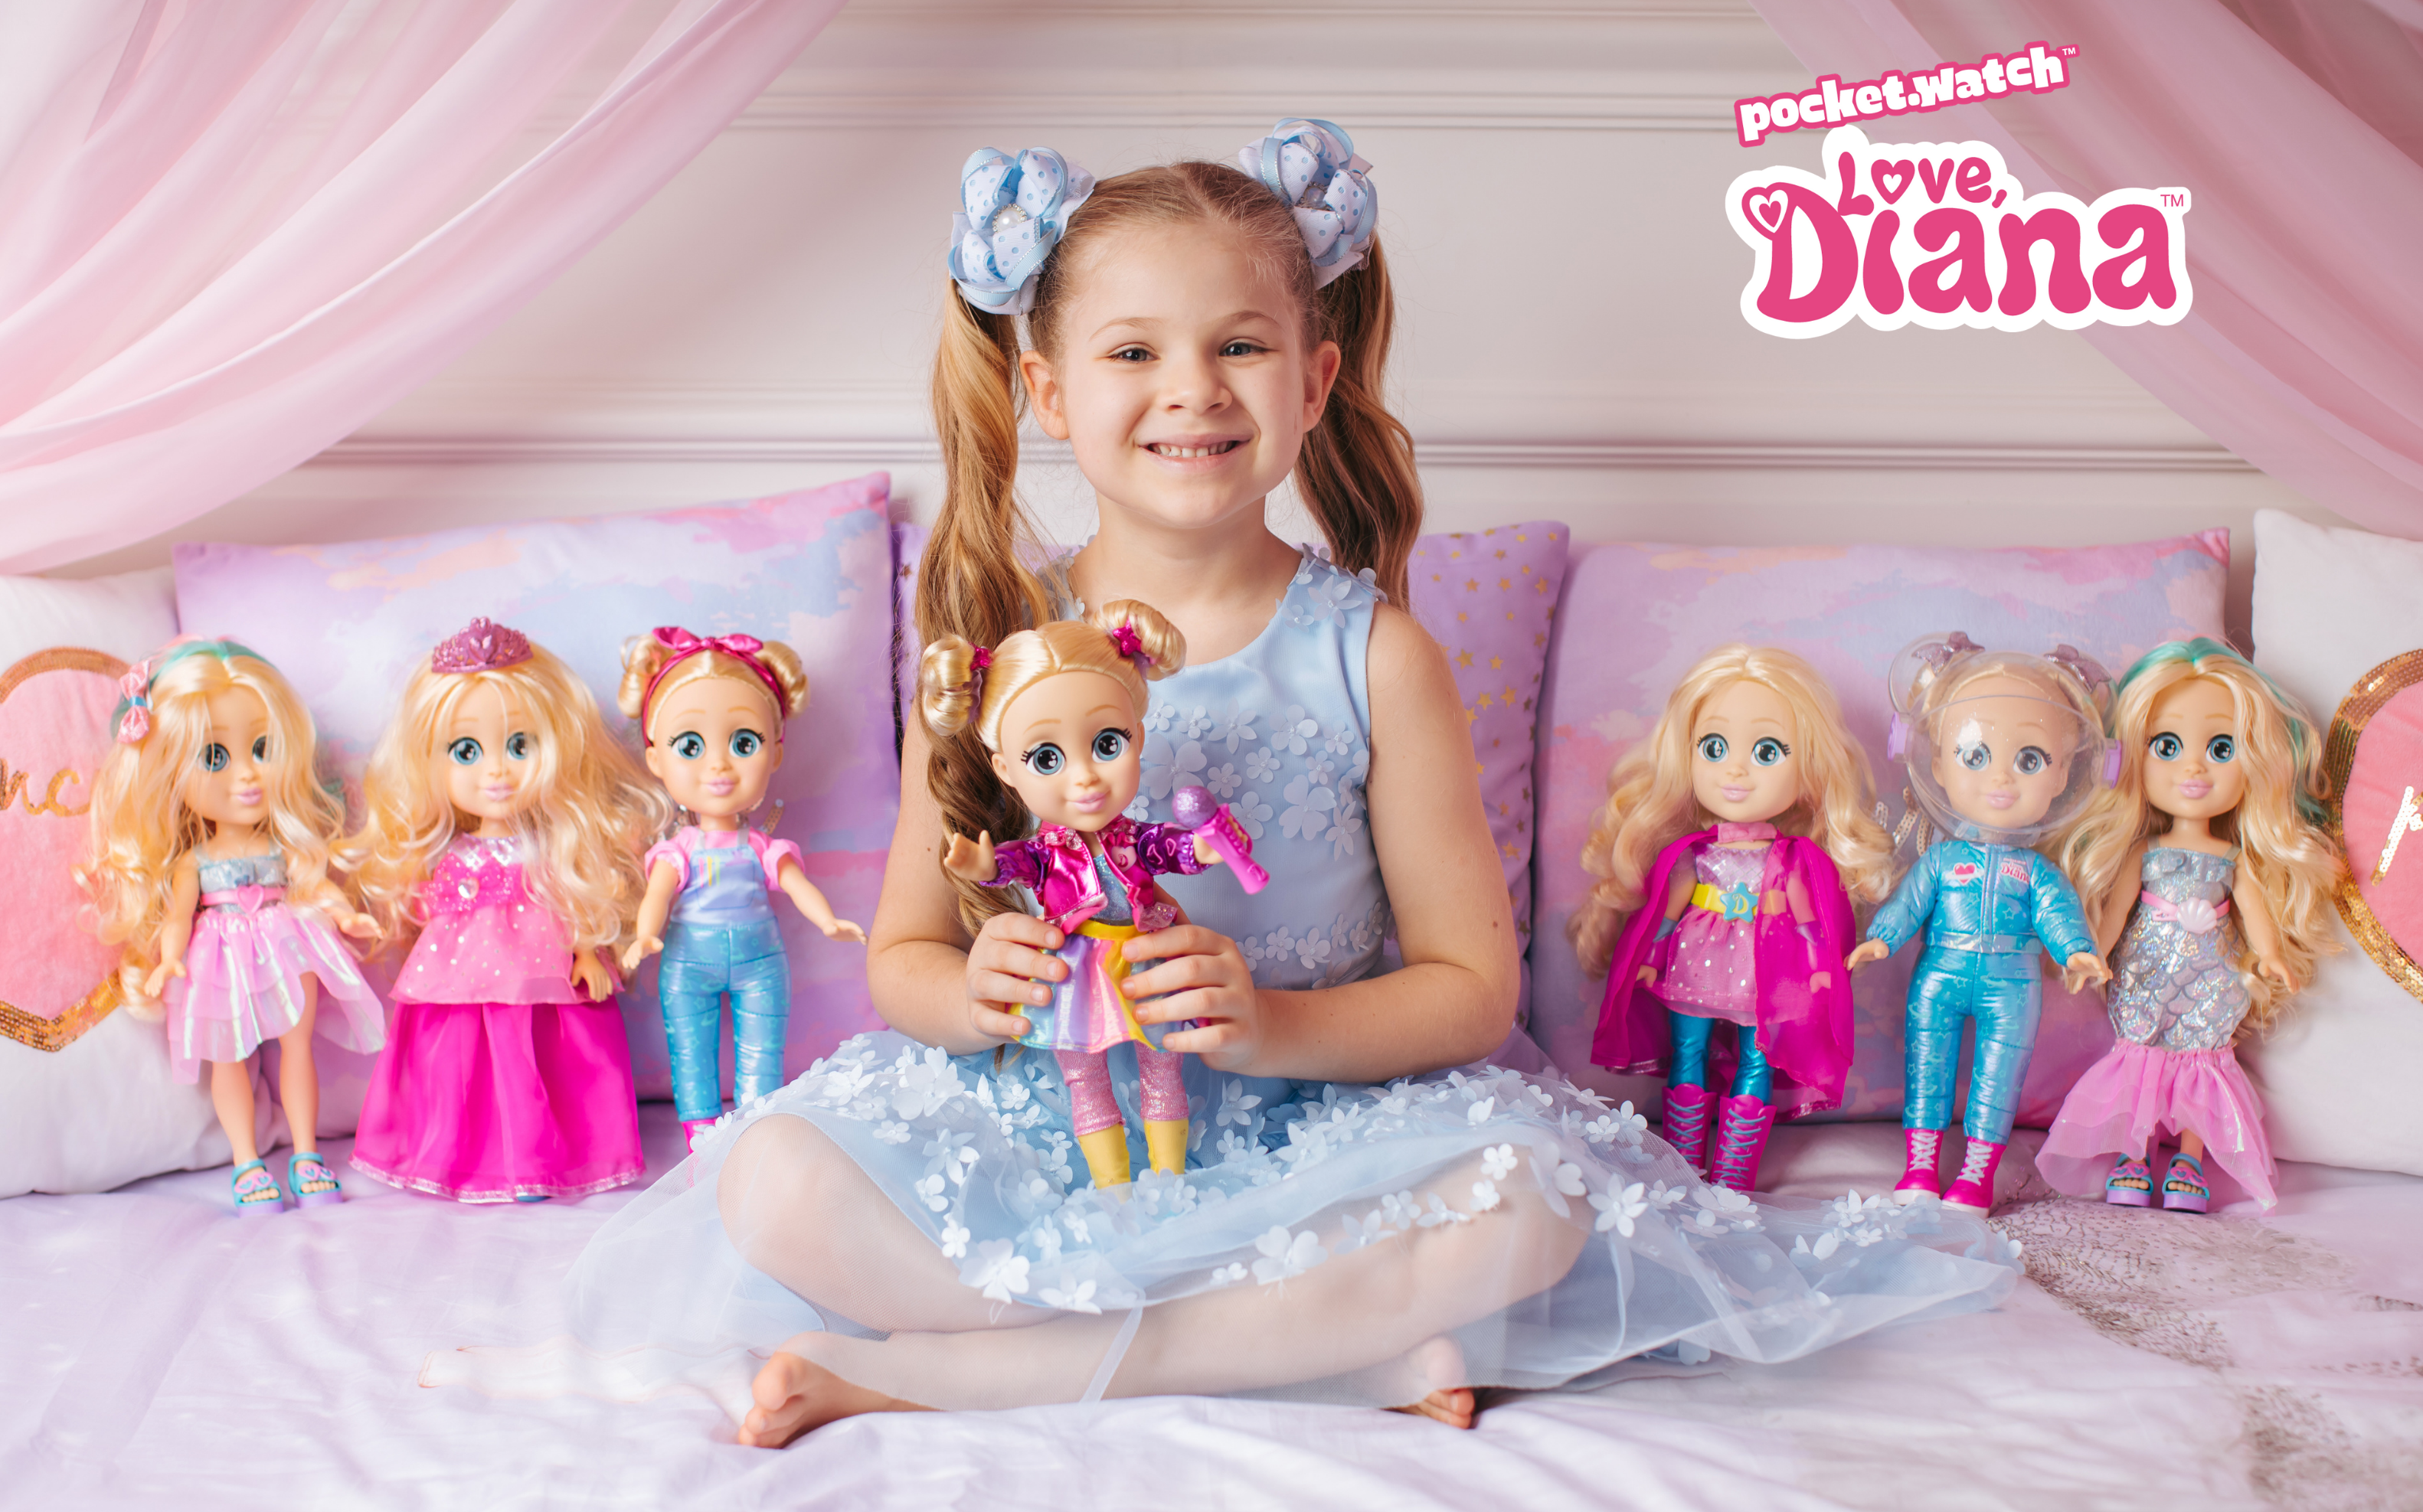 Our Love Diana dolls are here! Shop the range at Kmart, Big W, Target and other leading toy retailers.